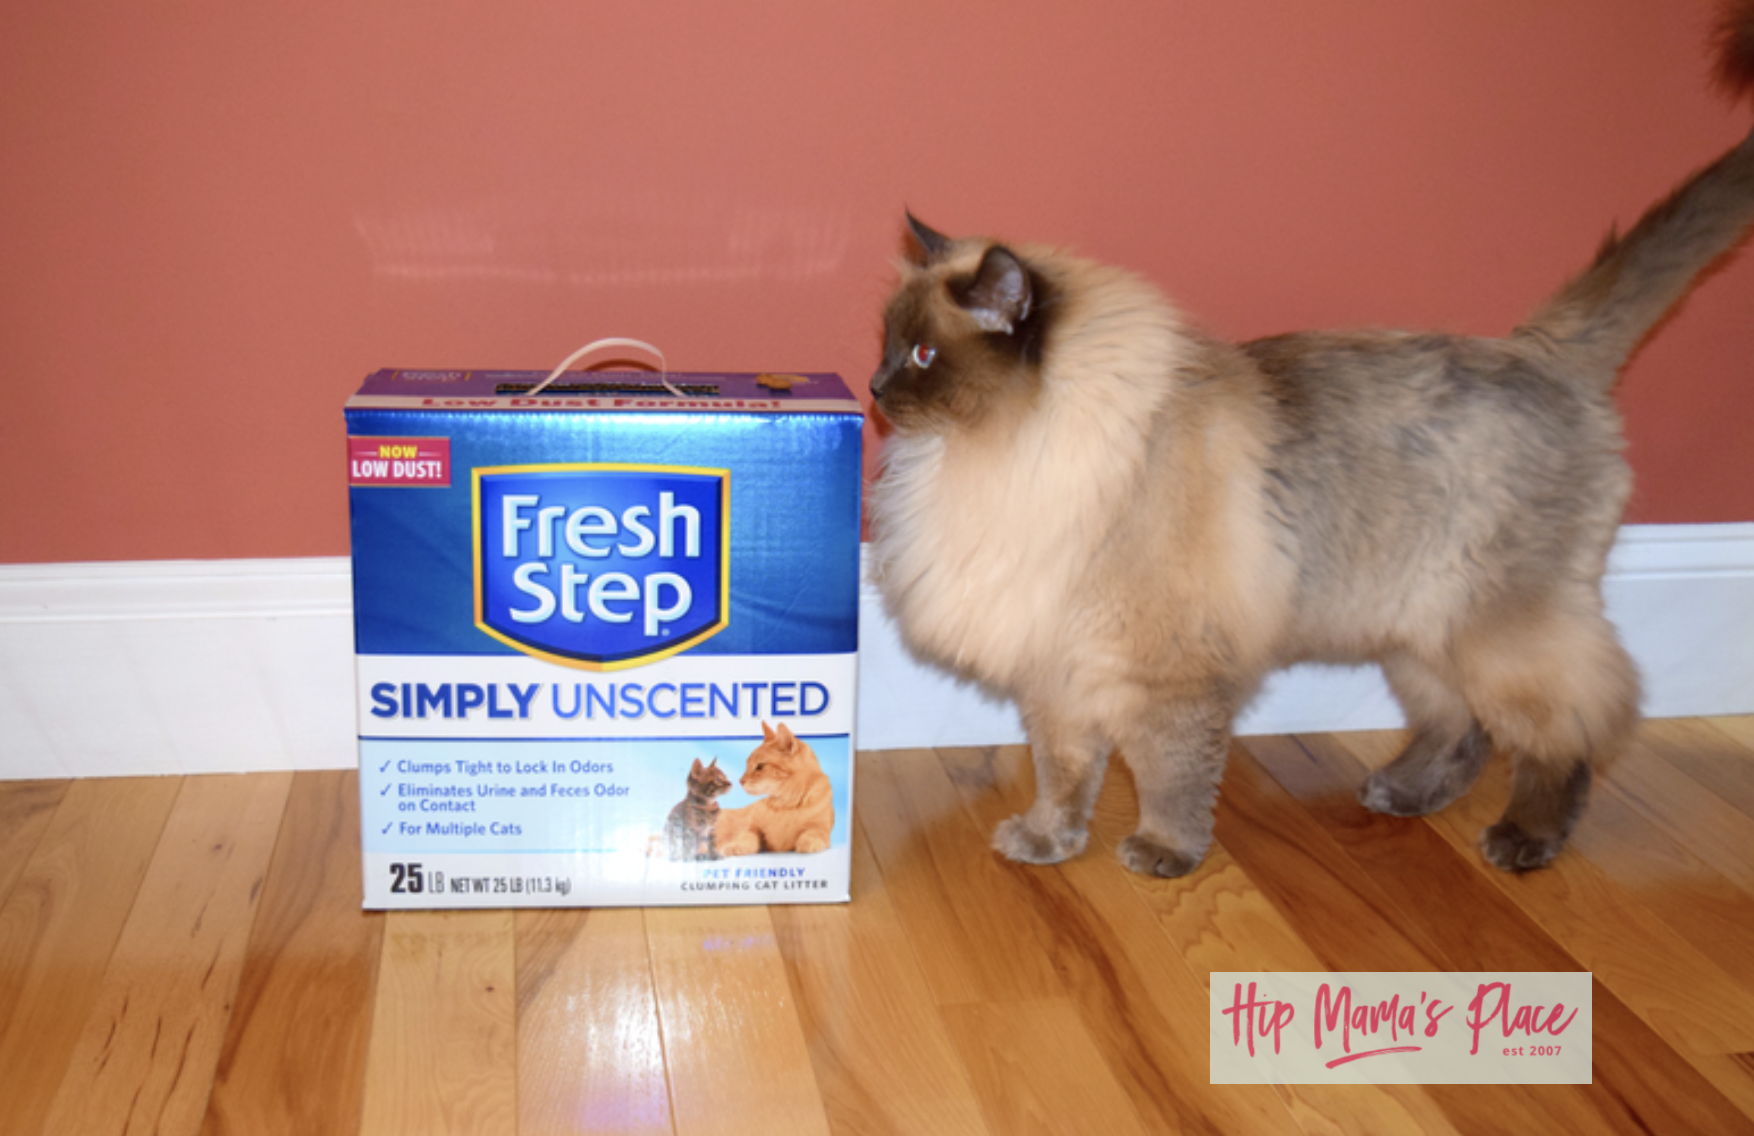 October 29 is National Cat Day and I'm happy to be partnering with Fresh Step® Litter for this post celebrating our love for our pet cat, Oscar!